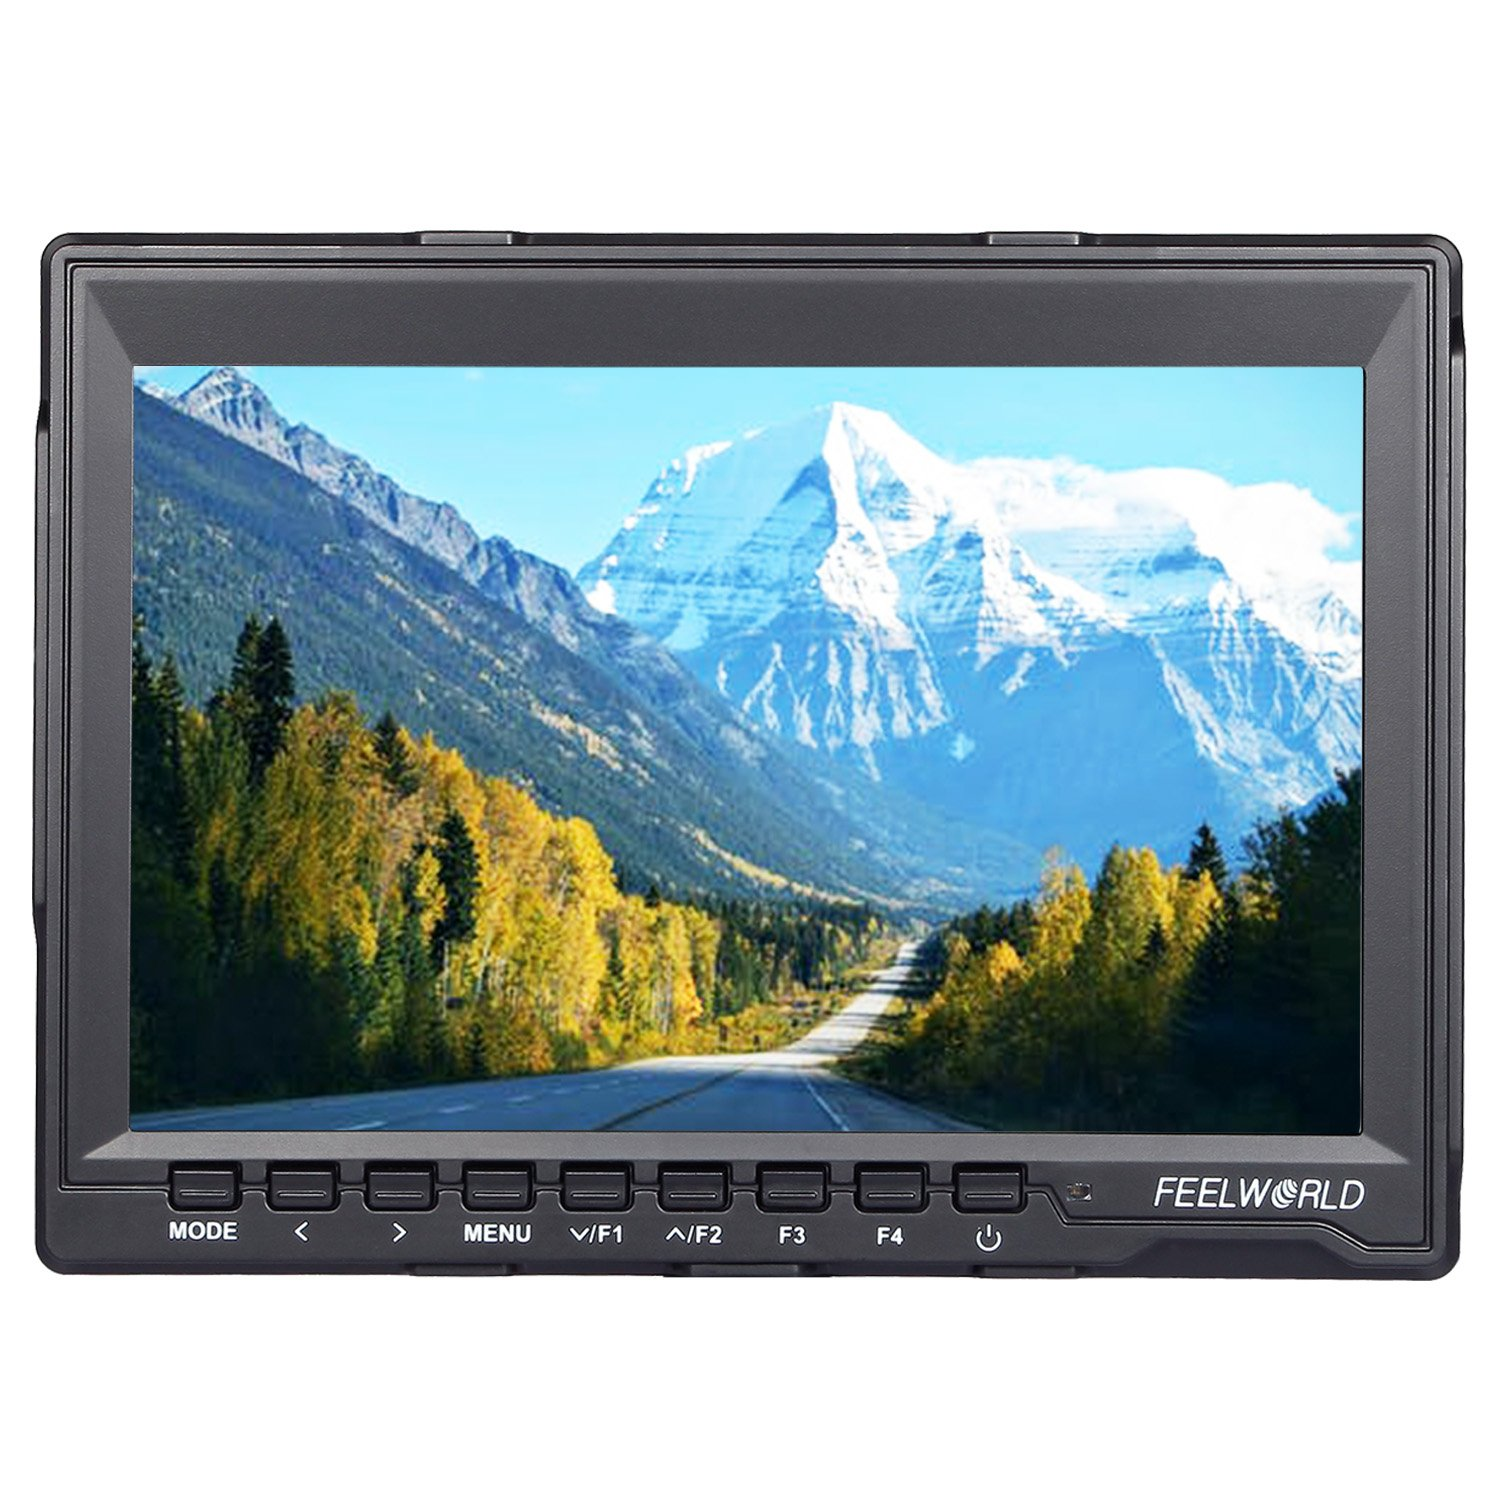 FEELWORLD FW 759 7 inch HD 1280x800 IPS On Camera Field monitors 16:10 or 4:3 Adjustable Ratio 800:1 Contrast Camera HDMI monitor for Cannon,Sony,FPV monitors etc by FEELWORLD